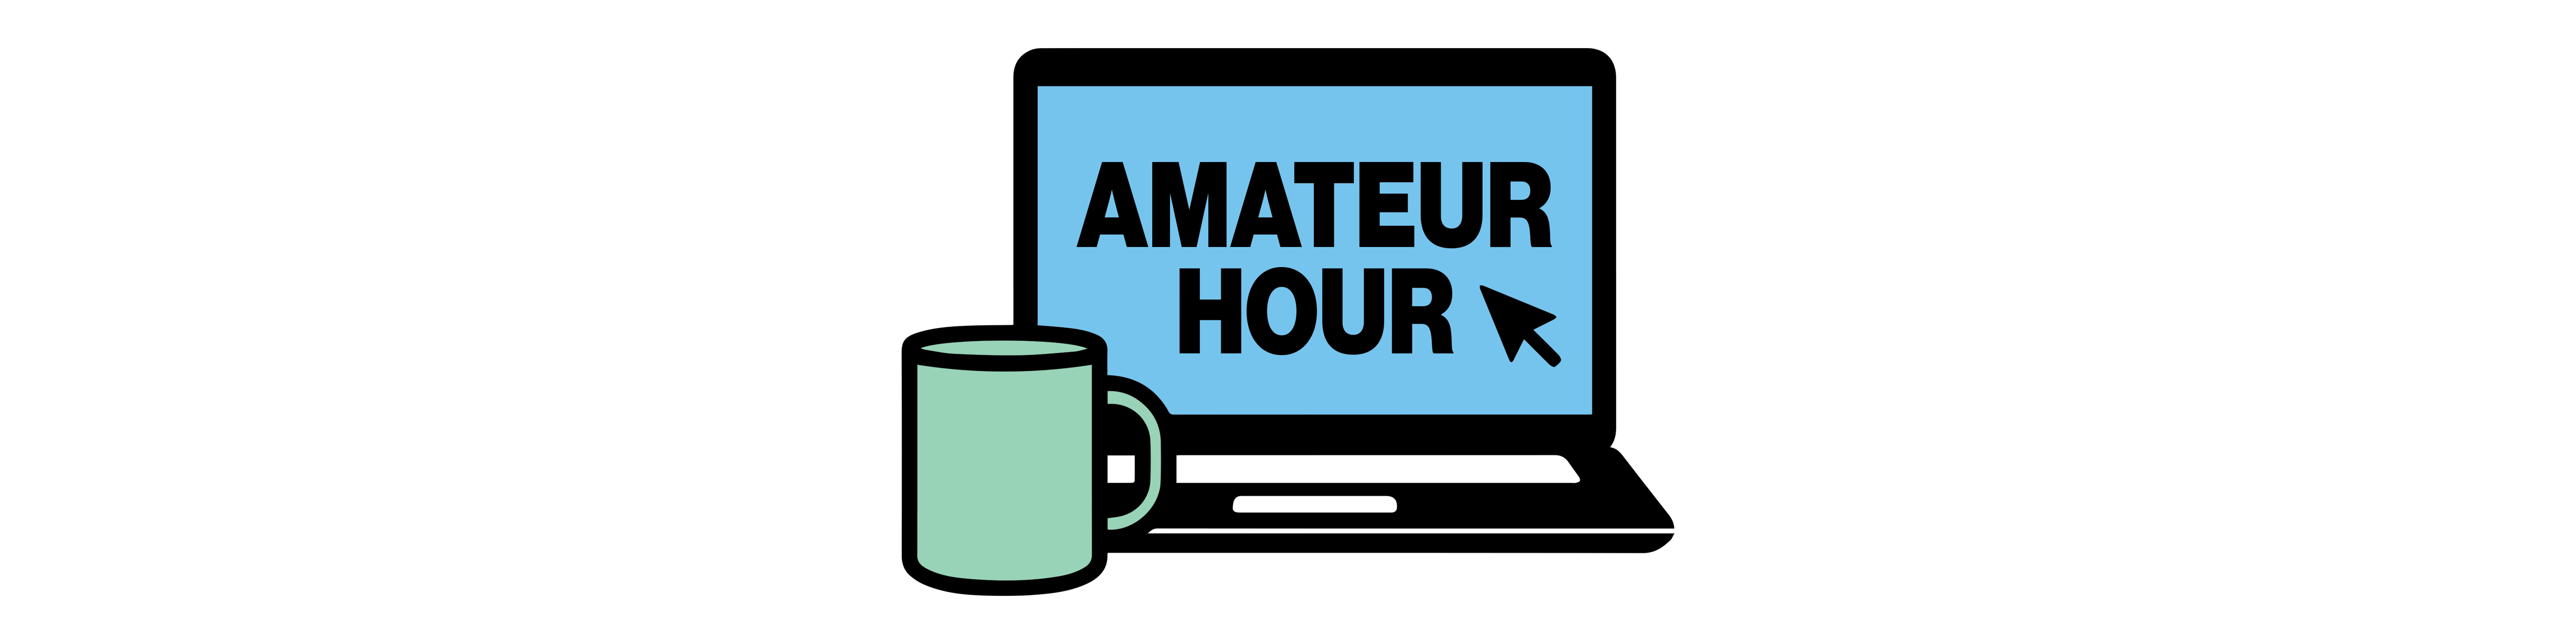 Amateur Hour: \'I Want to Fit in at Work, but I\'m Not a Big.